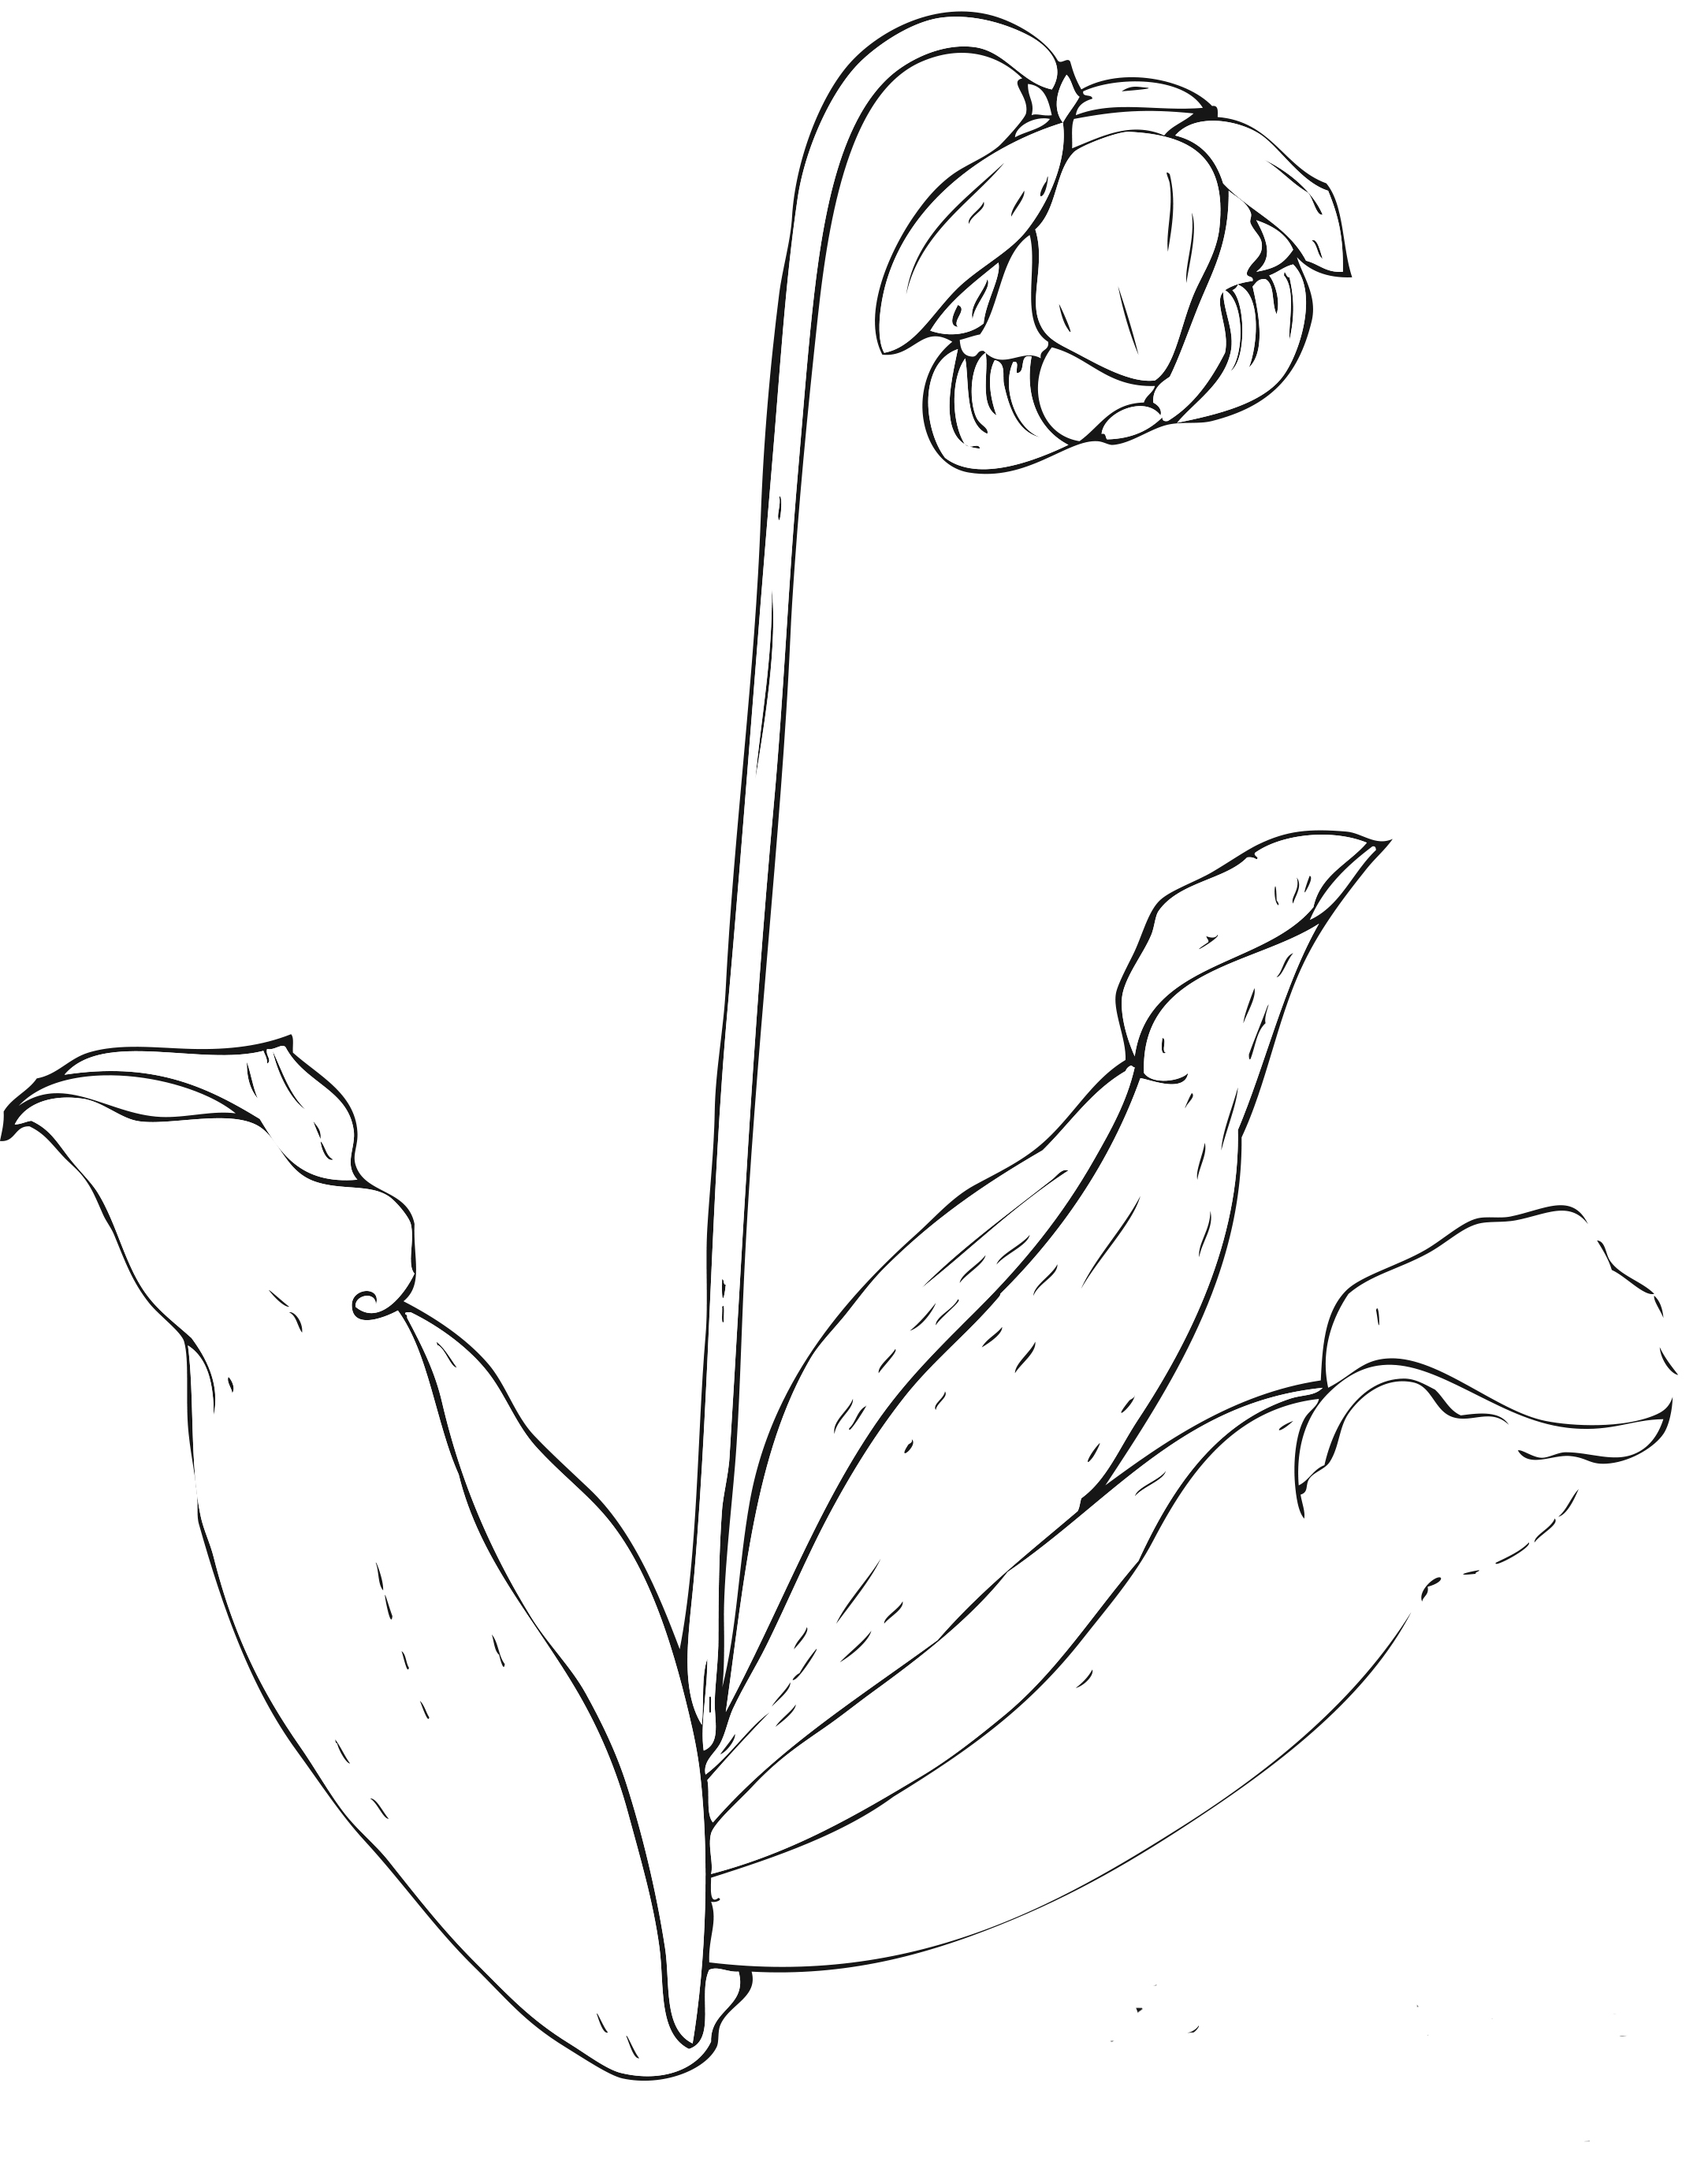 pictures of flowers to color detailed flower coloring pages to download and print for free color pictures flowers of to